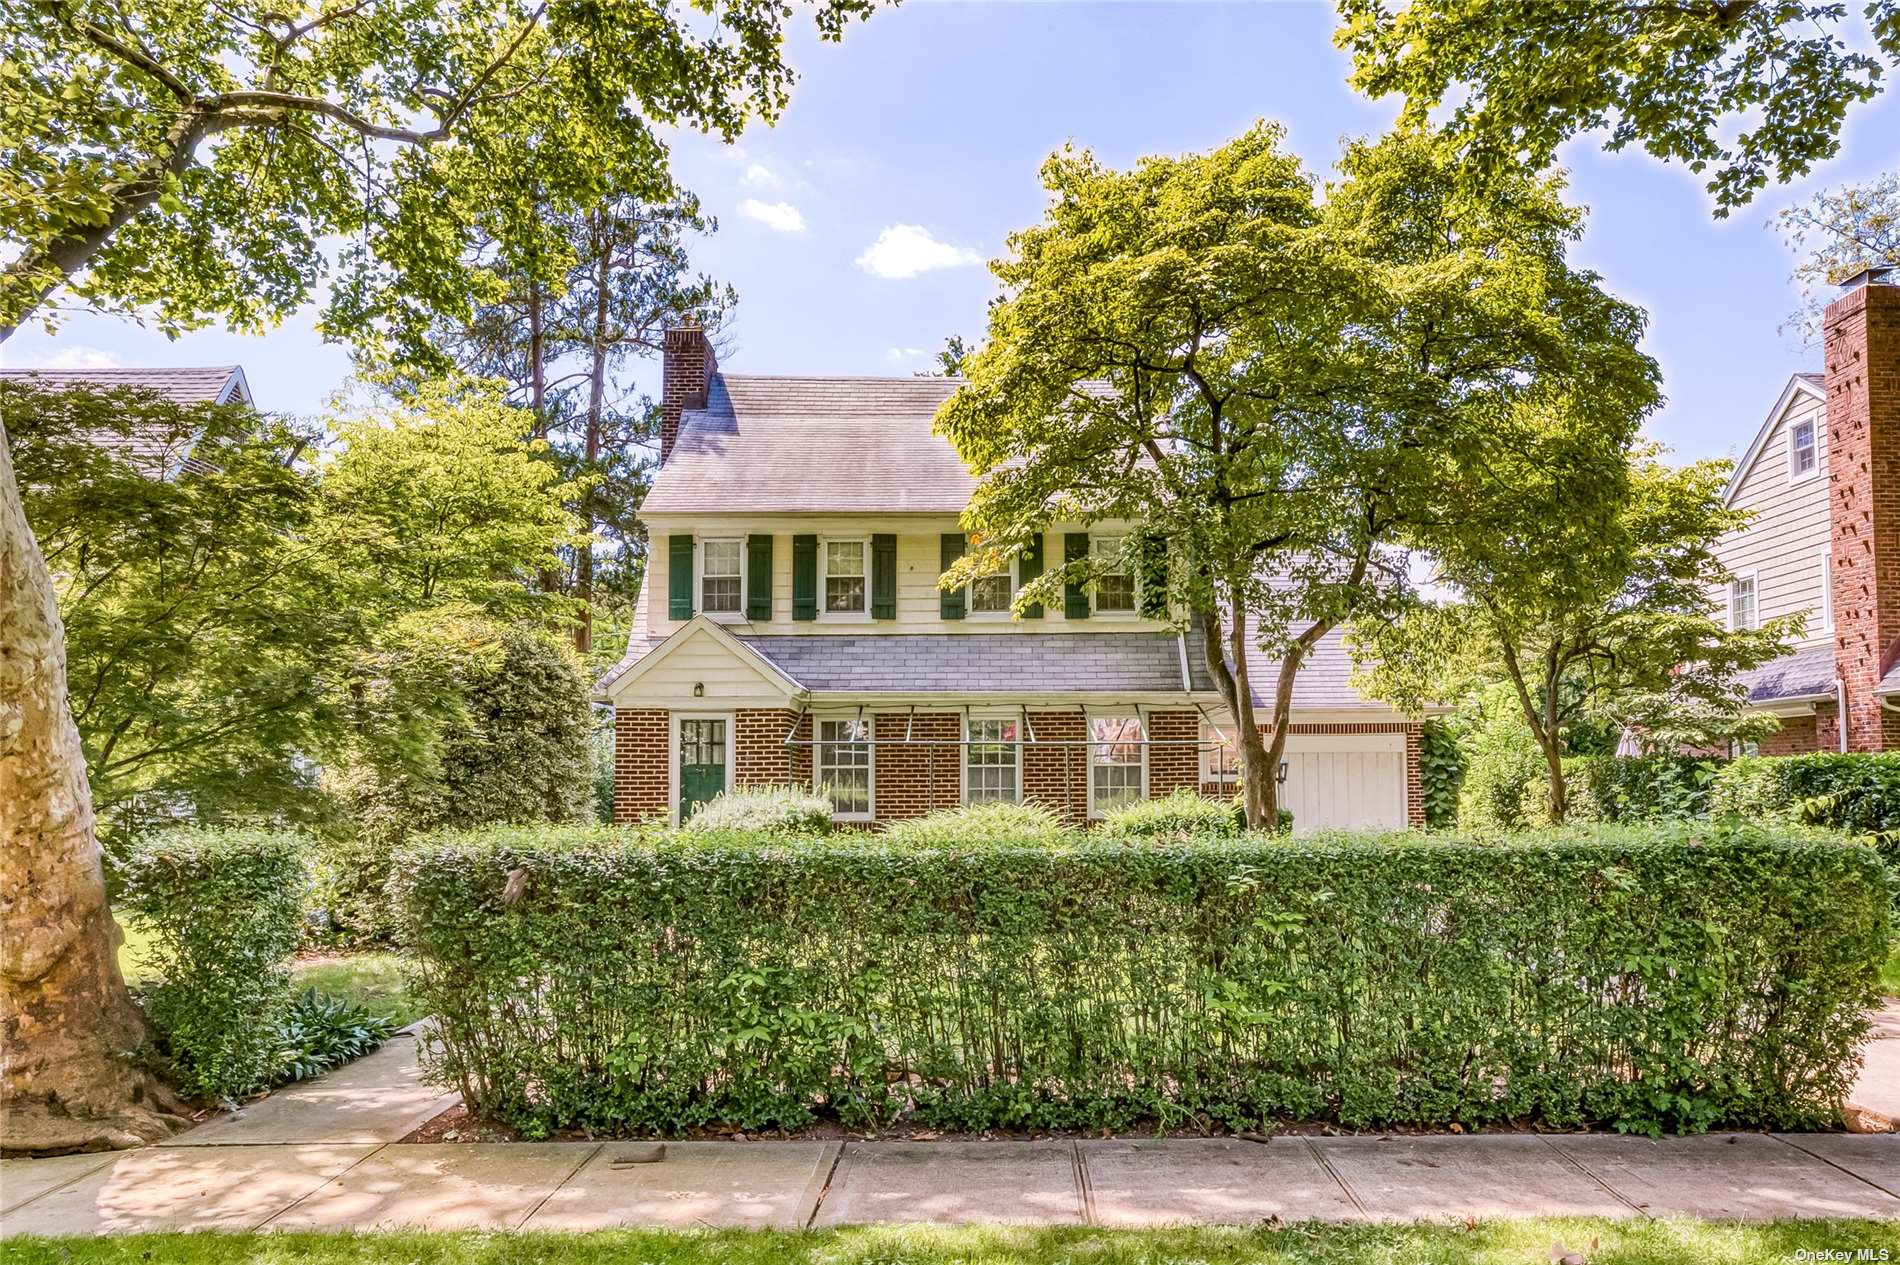 Classic 3 Bedroom 2.5 Bath Colonial in beautiful Garden City village with Garden City Schools.  Full Basement and Attic provide plenty of extra space to make your own.  Add a closet to backroom to create a 4th bedroom.  7 Minute walk to Stewart Manor LIRR station.